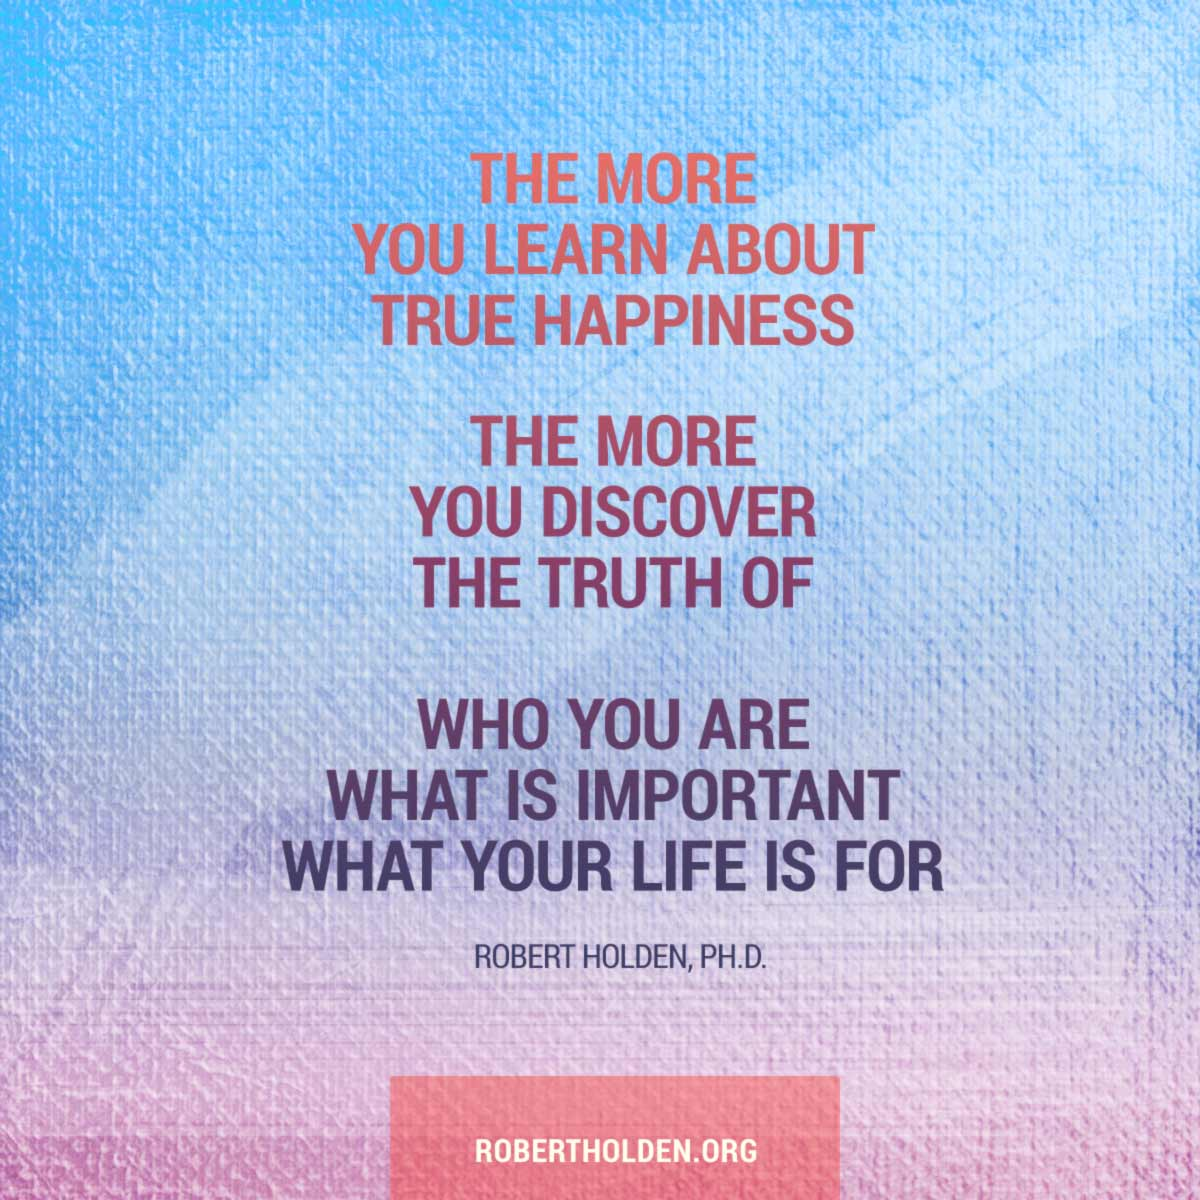 A Quote About Happiness The Happiness Project  Robert Holden Ph.d.